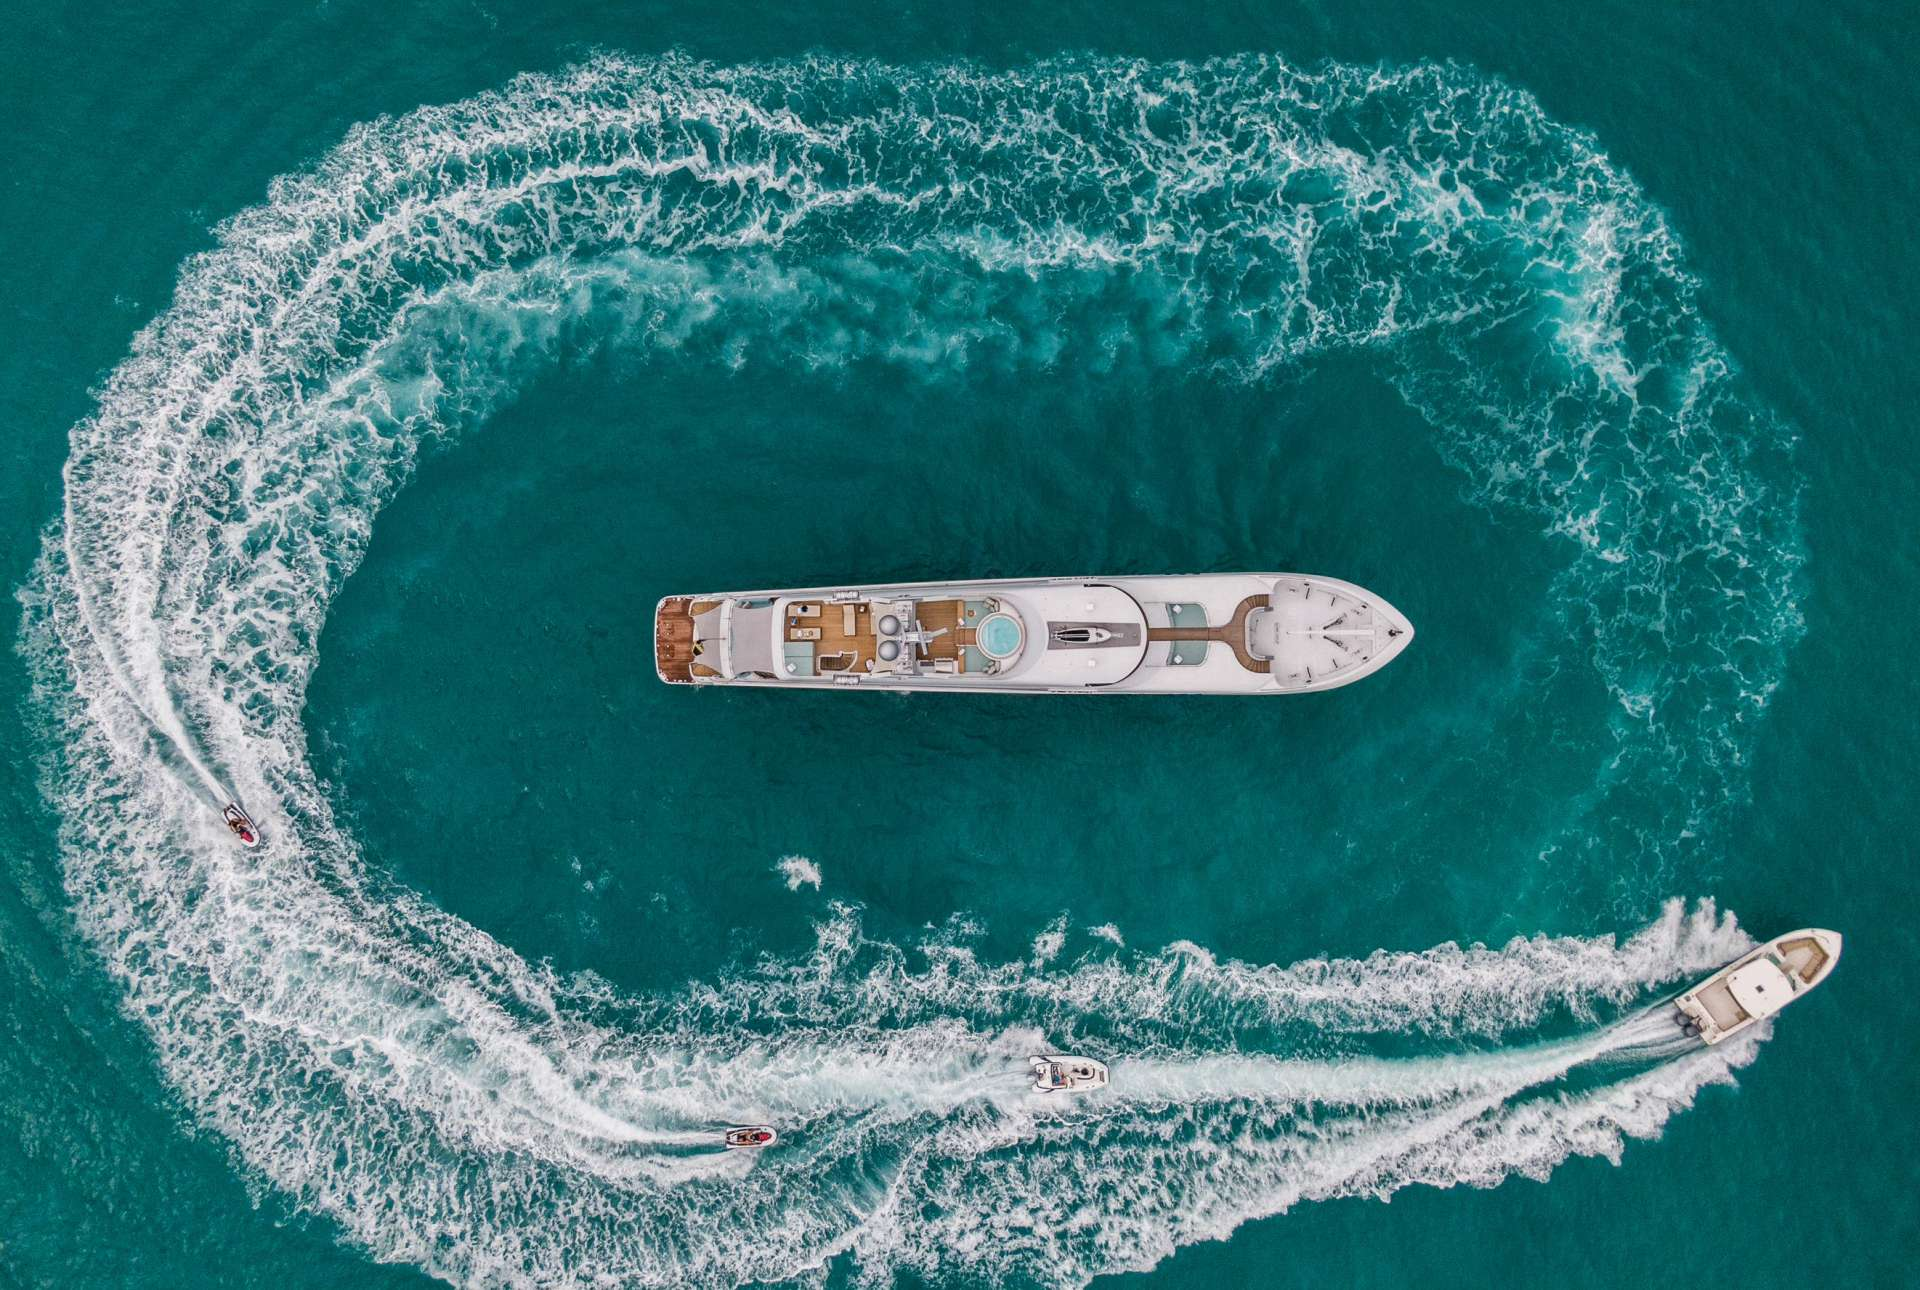 Image of Just Enough yacht #19